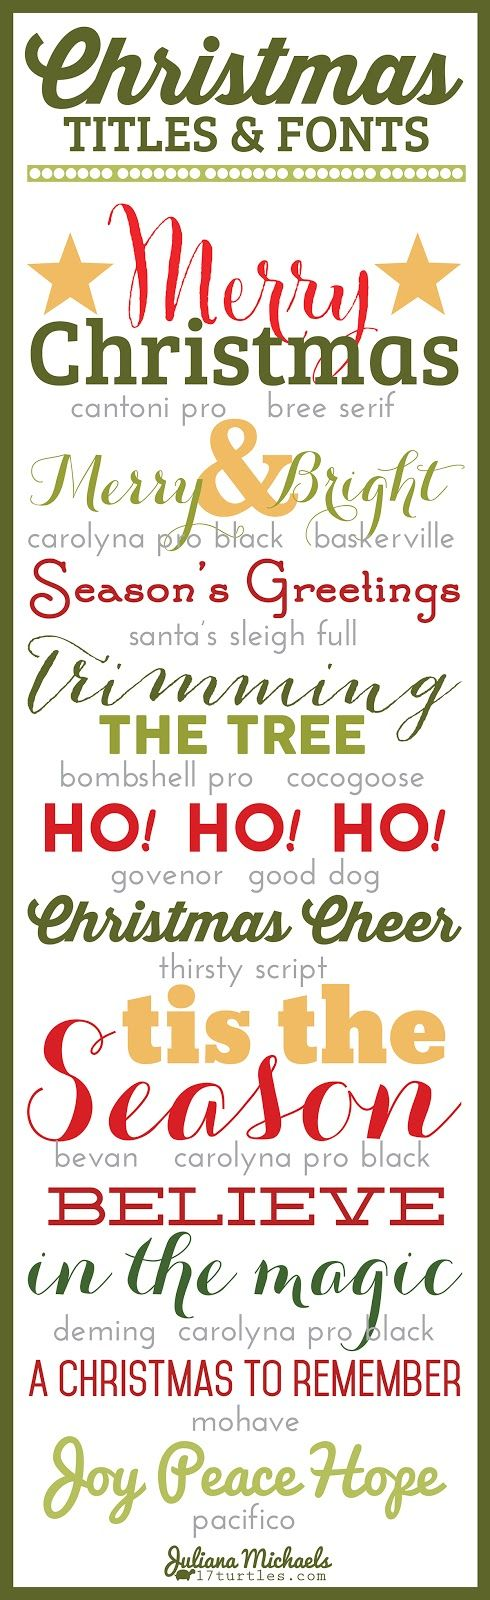 Christmas Titles and Fonts Juliana Michaels 17turtles  ~~ {15 Free fonts w/ easy download links} ~~